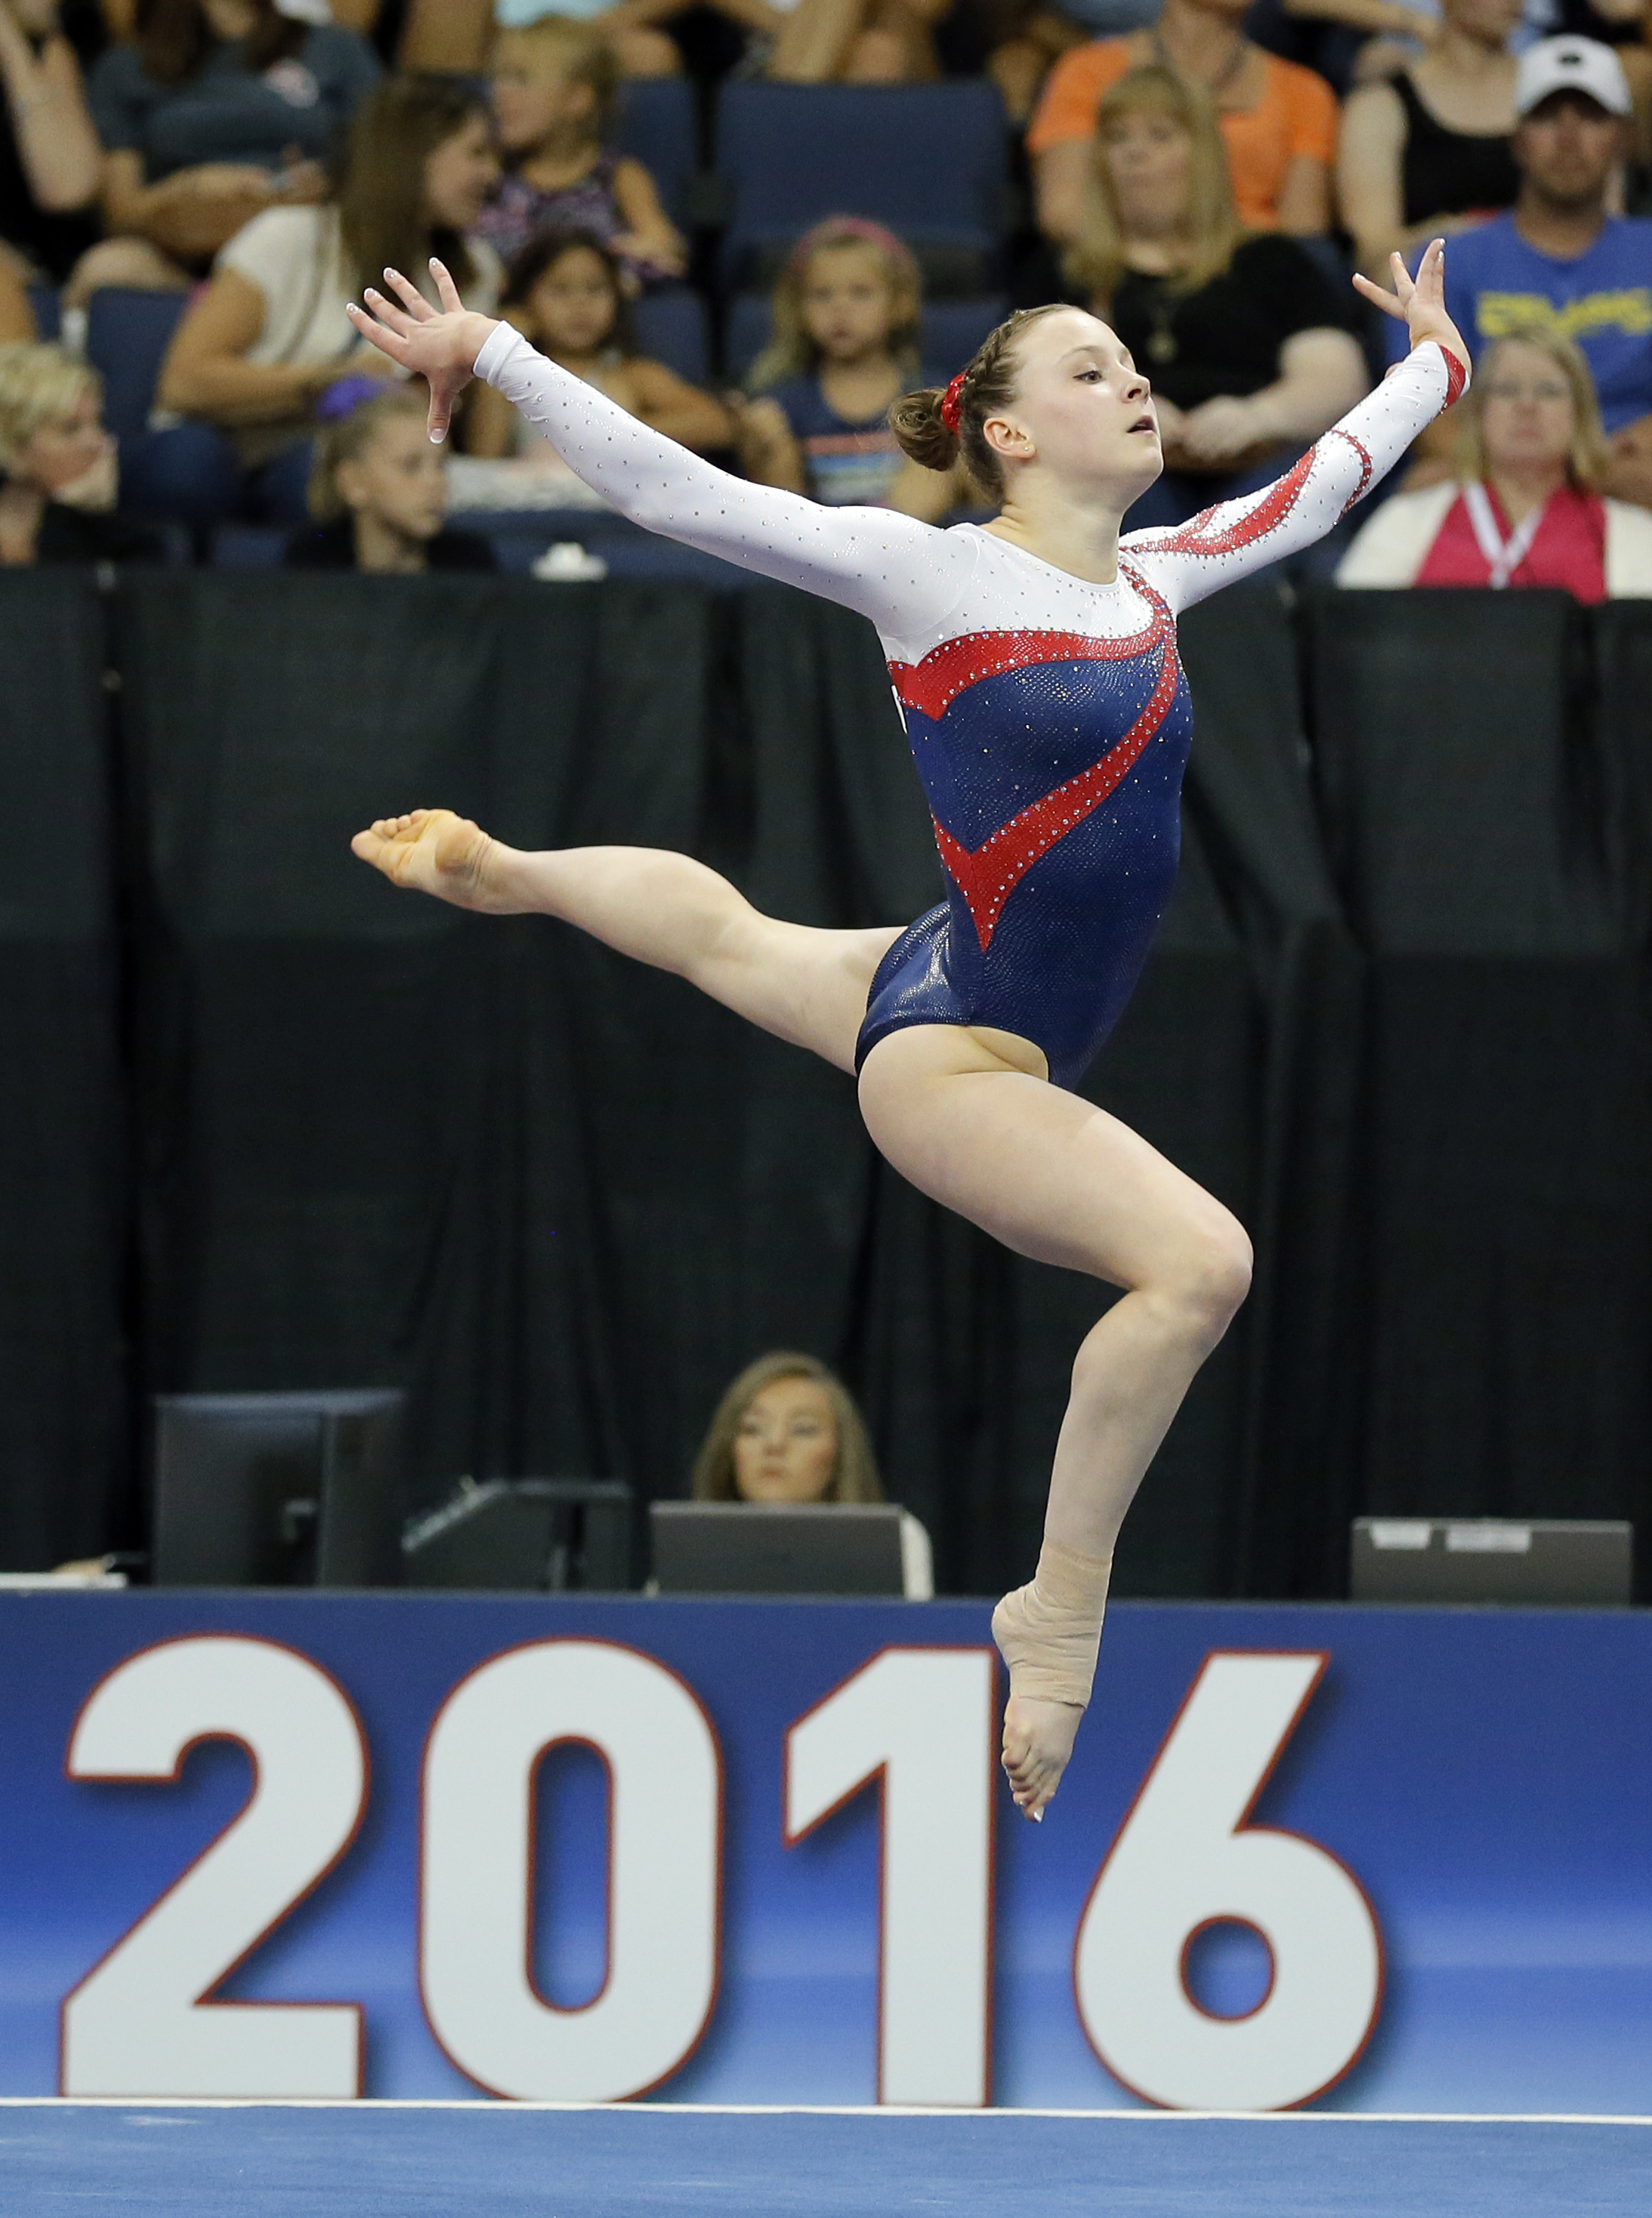 Lexy Ramler competes in the floor exercise during the U.S. women's gymnastics championships, Friday, June 24, 2016, in St. Louis. (AP Photo/Tony Gutierrez)